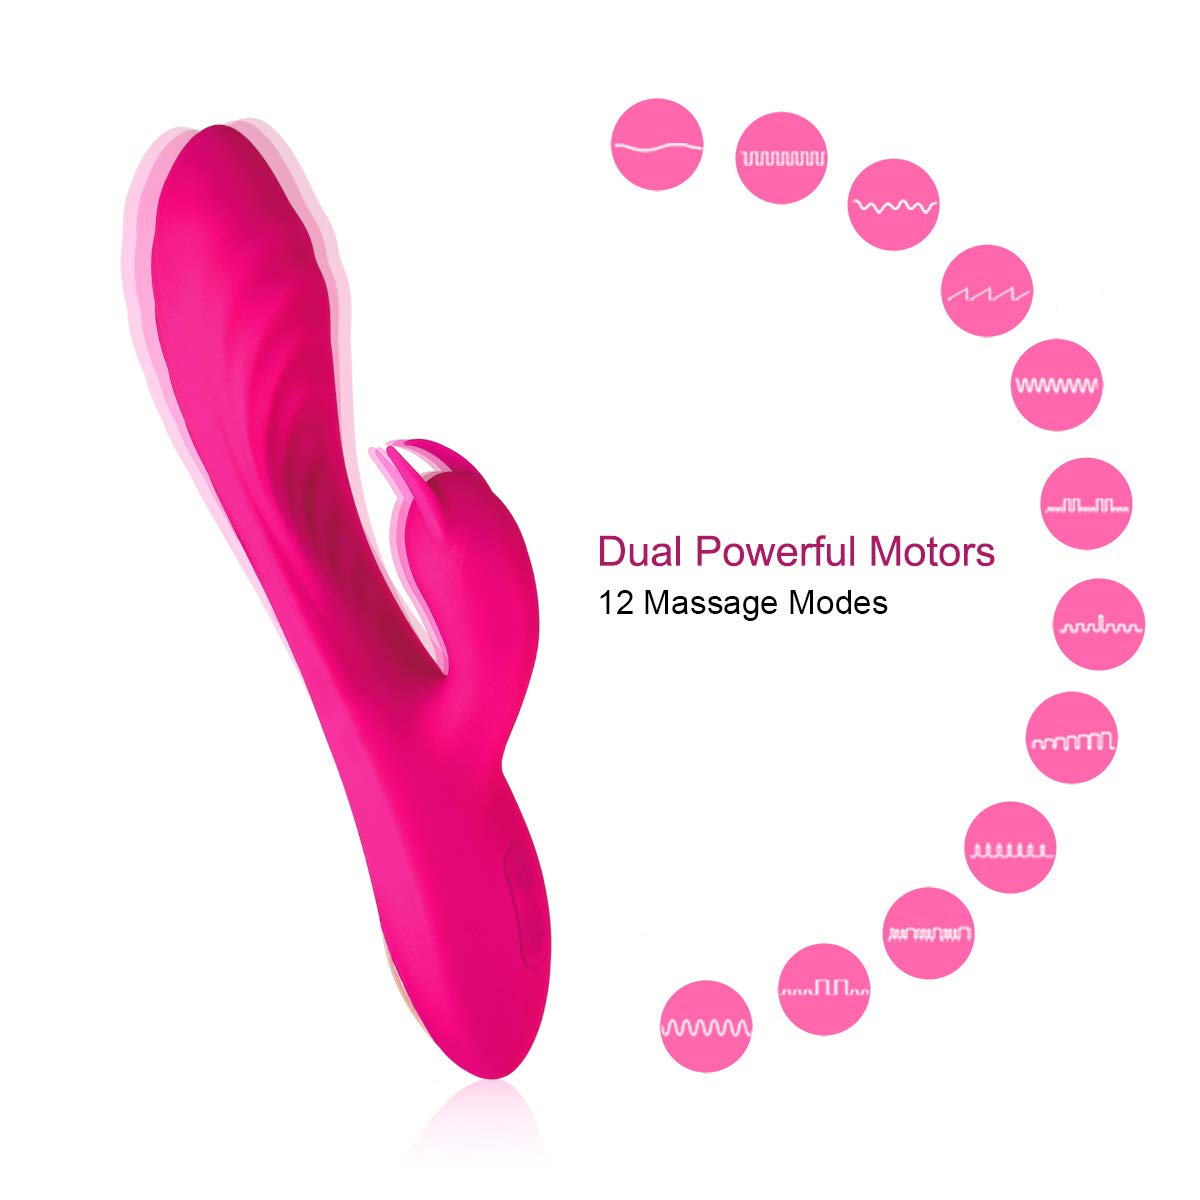 Portable Wireless Handheld Massager - Powerful Dual Motor - 12 Vibration Frequency Modes - Arbitrary Bending - Waterproof - USB Magnet Charging - Strongly Recommended for Healthy Sports Equipment